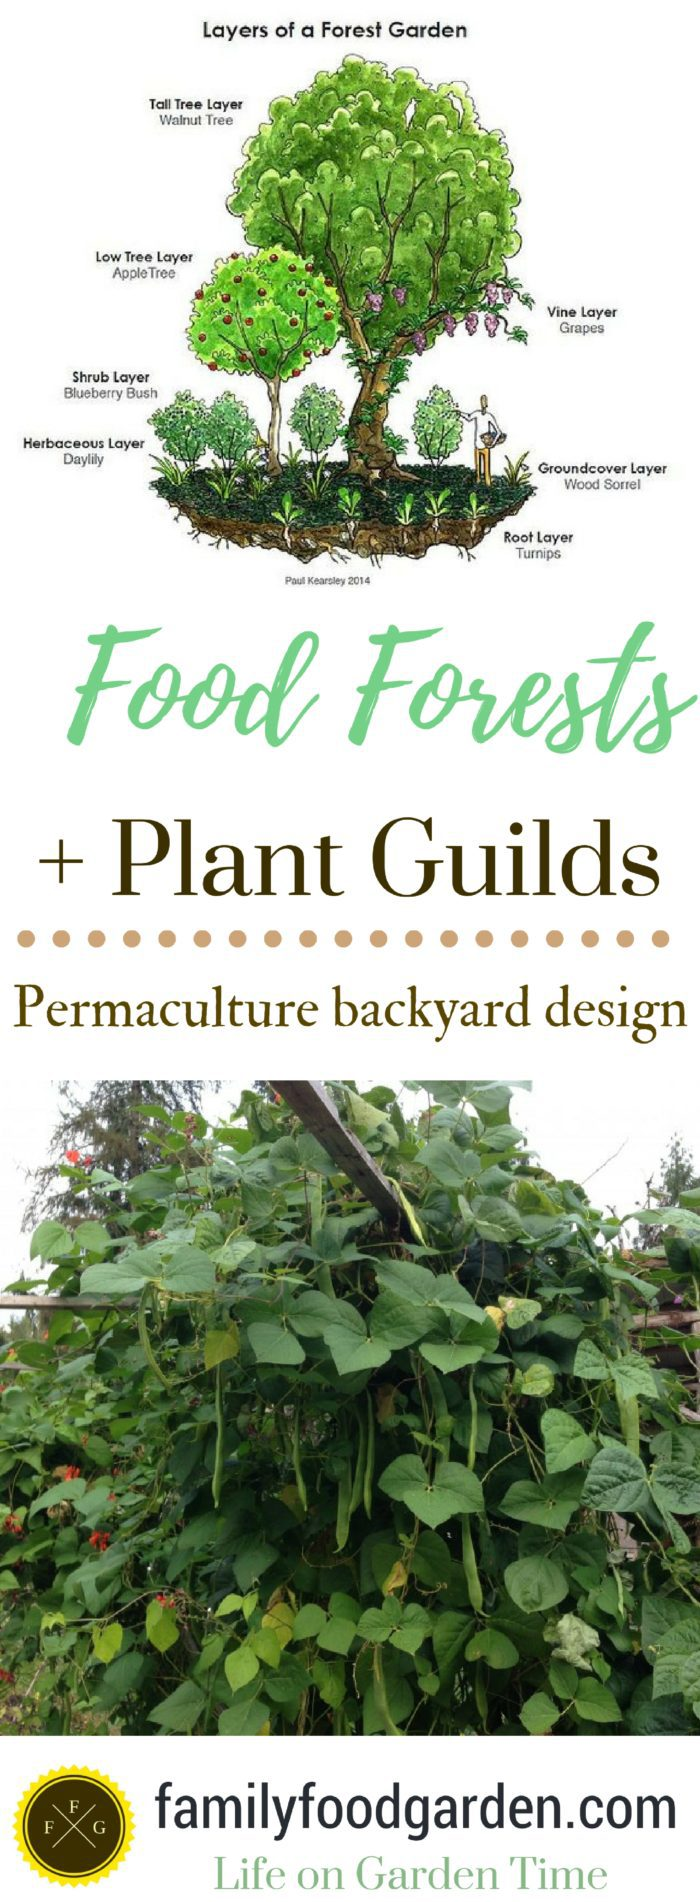 Food Forests & Plant Guilds in Permaculture Design